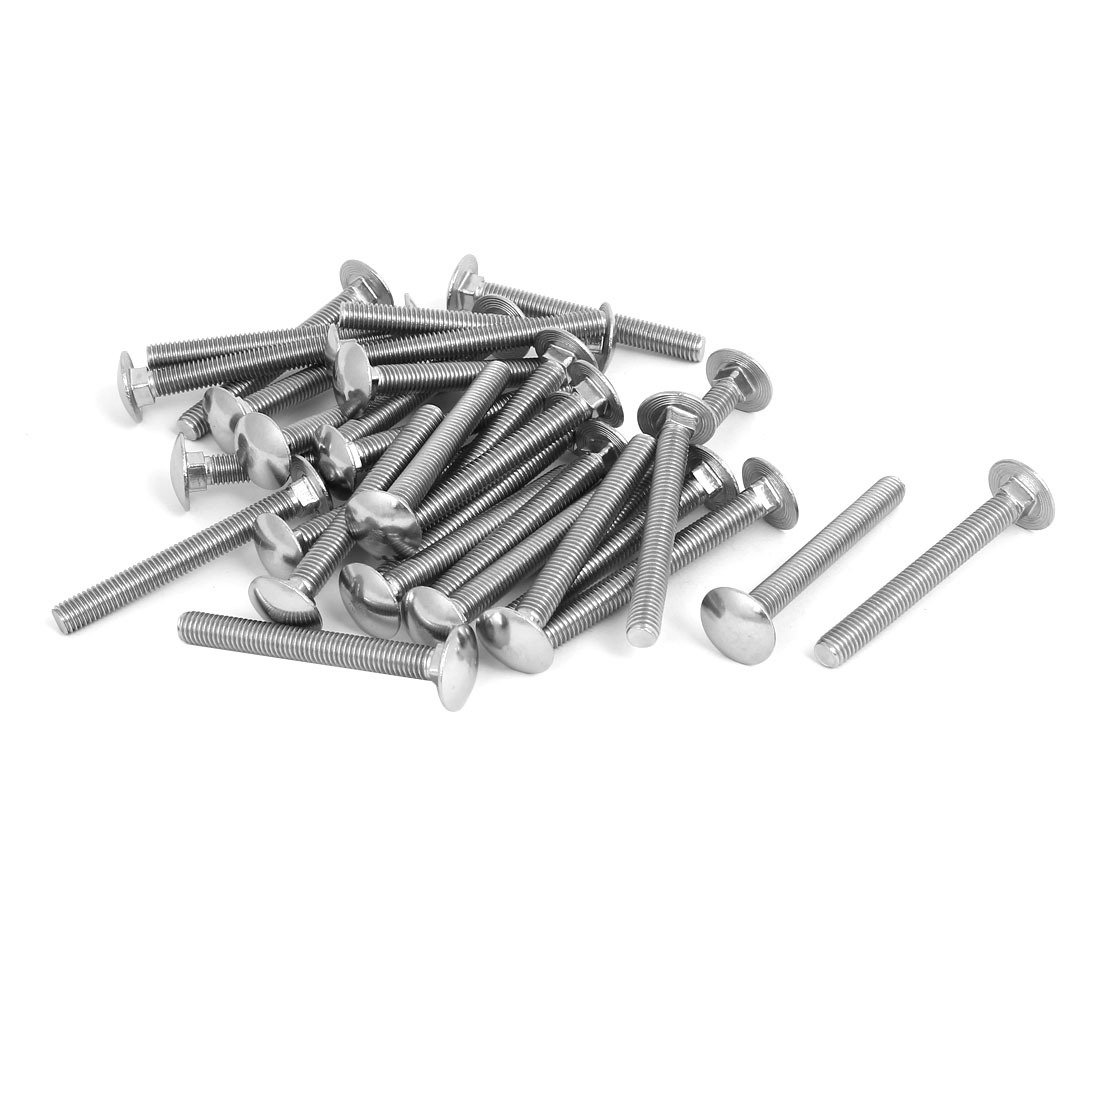 M8 x 70mm 304 Stainless Steel Round Head Carriage Coach Bolts DIN603 30PCS